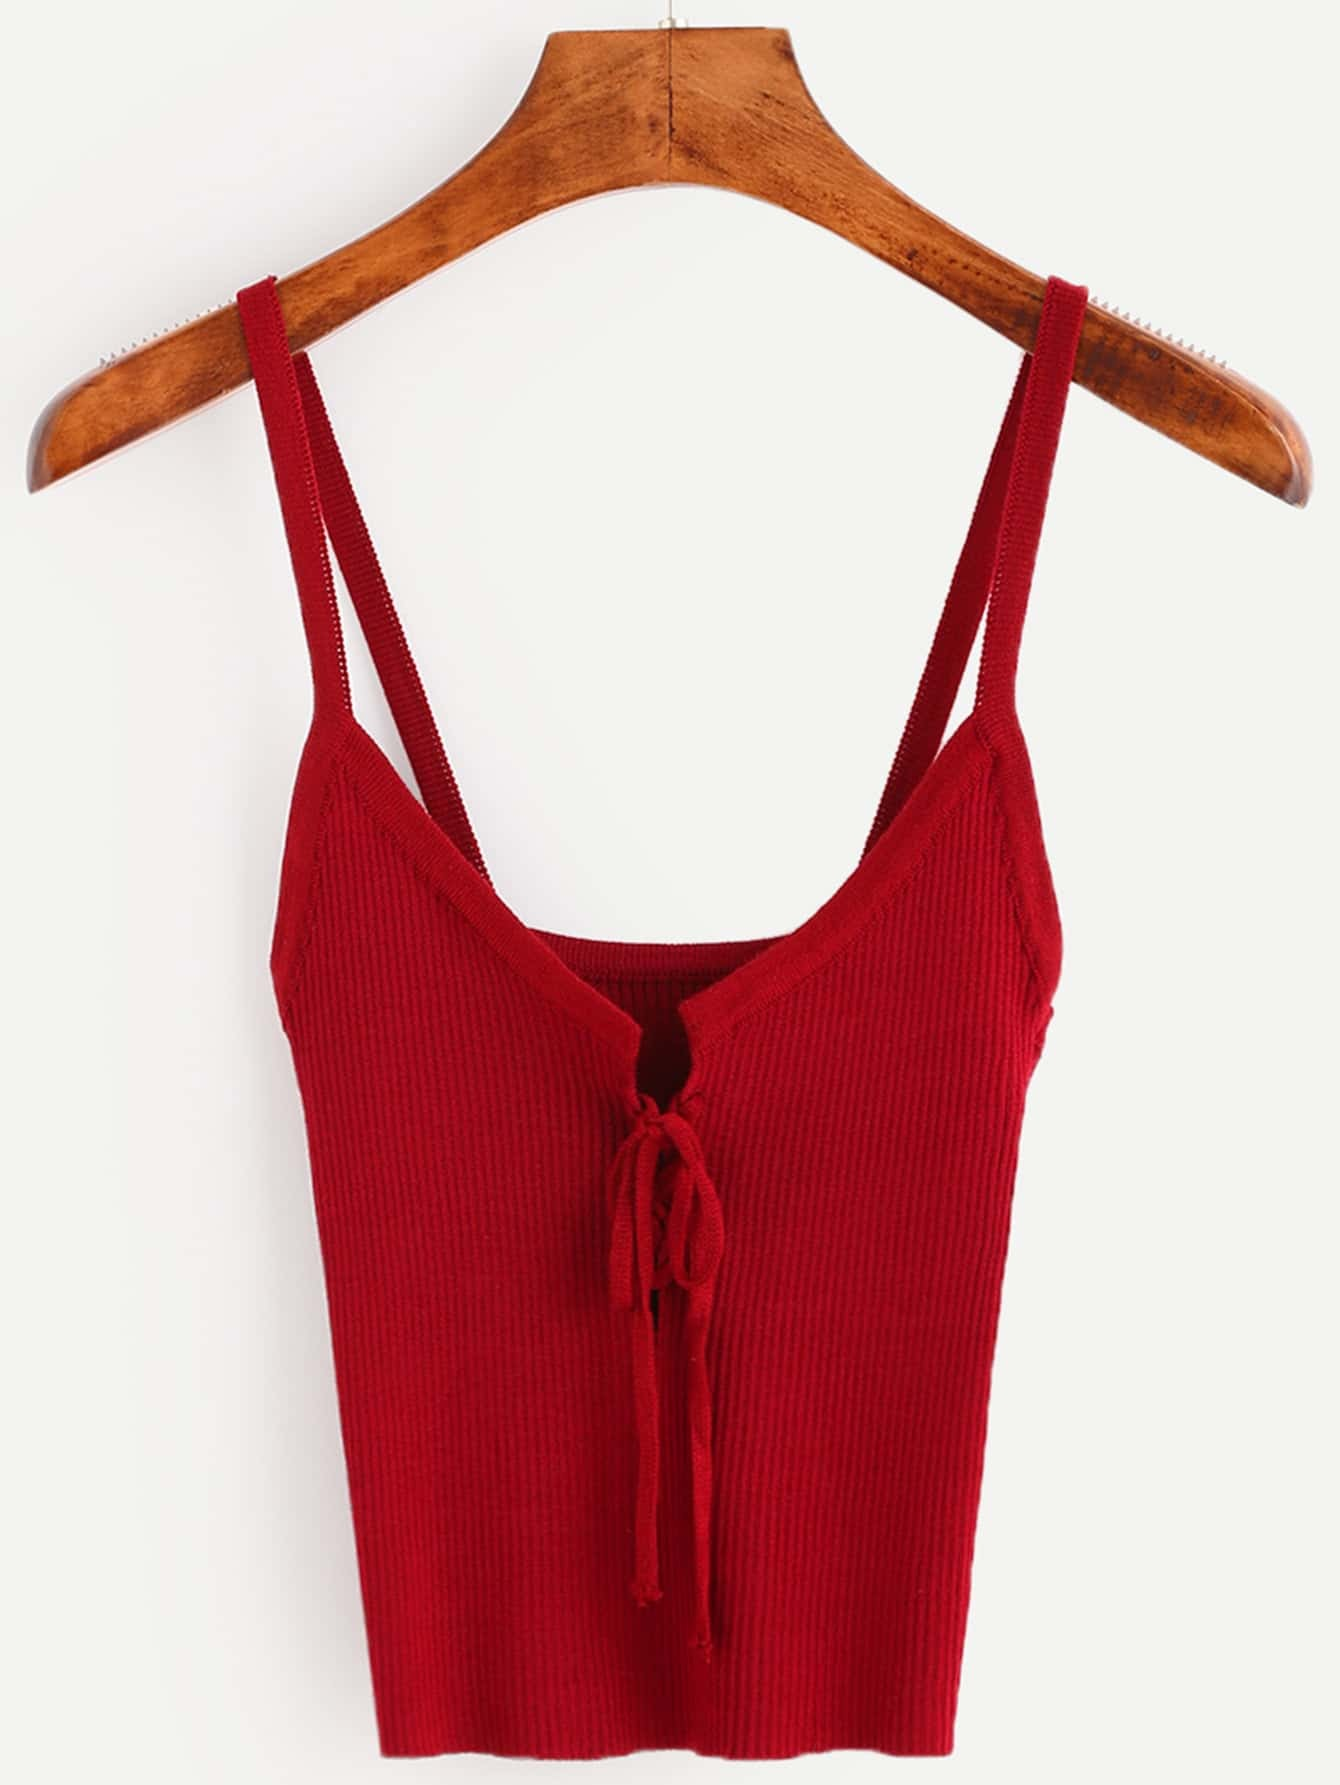 Burgundy Lace Up Ribbed Cami Top vest160707006